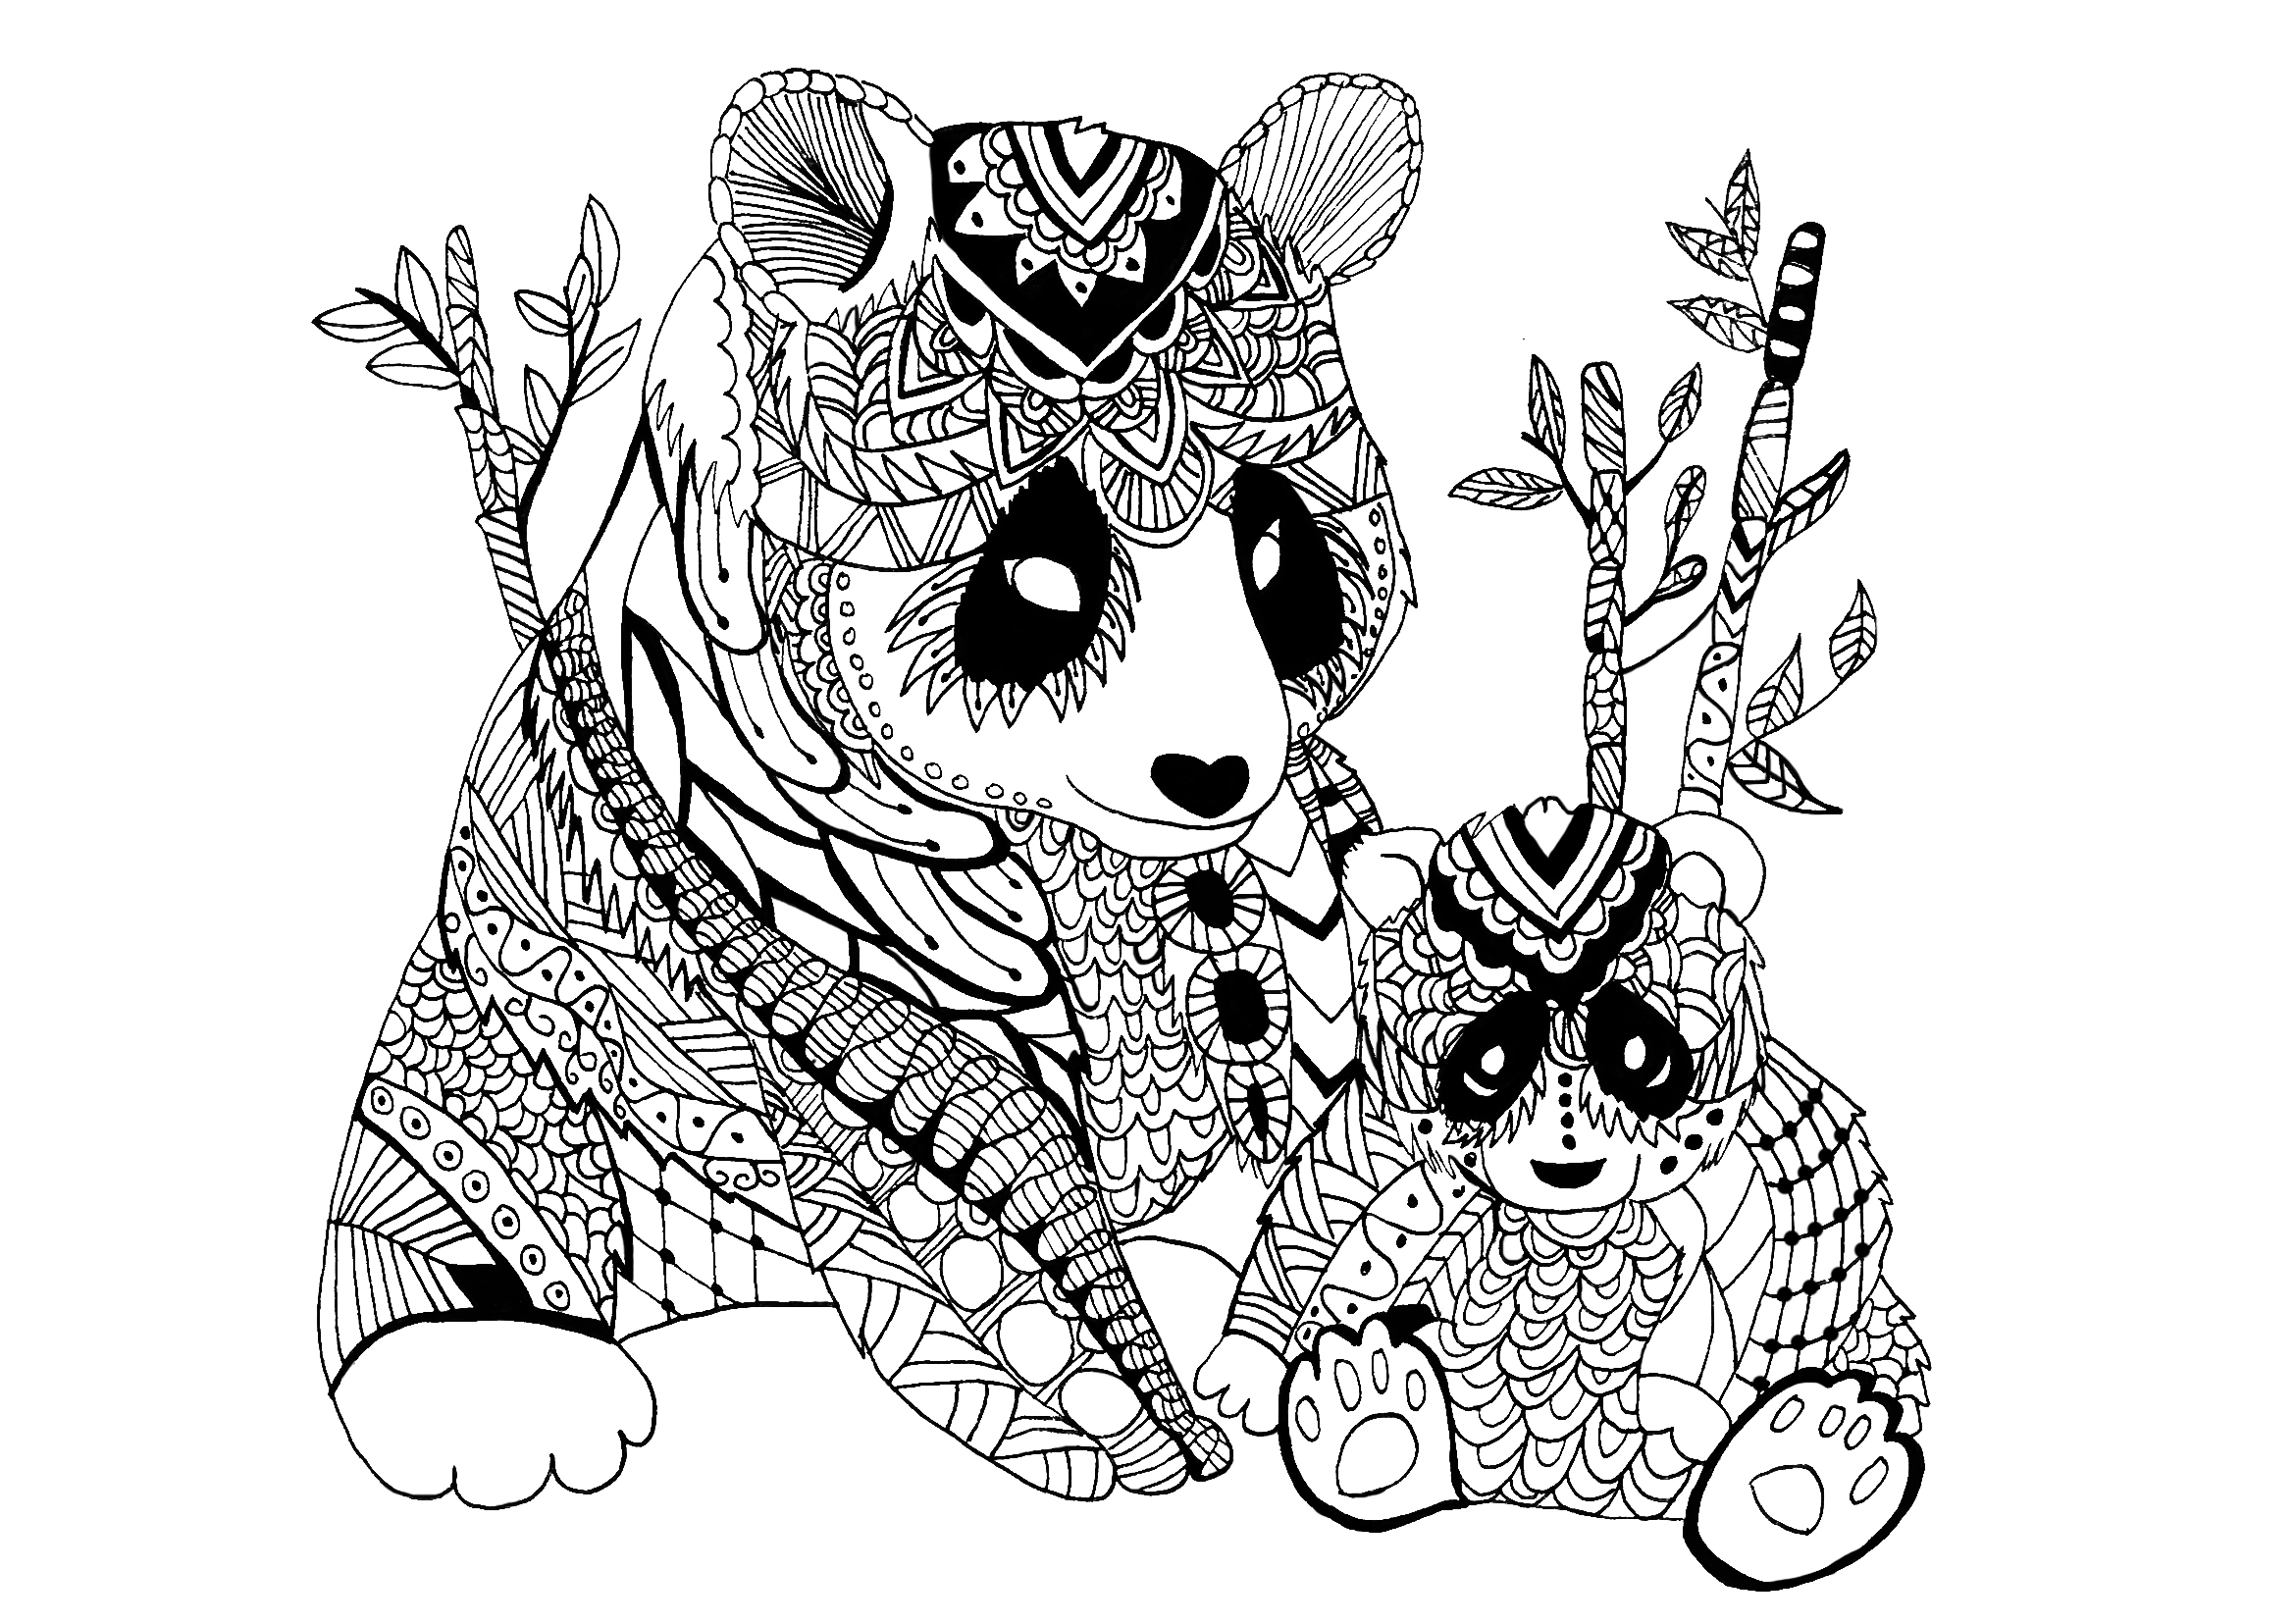 coloring page adults panda zentangle celine panda mother with baby drawn in zentangle style from the gallery zentangle